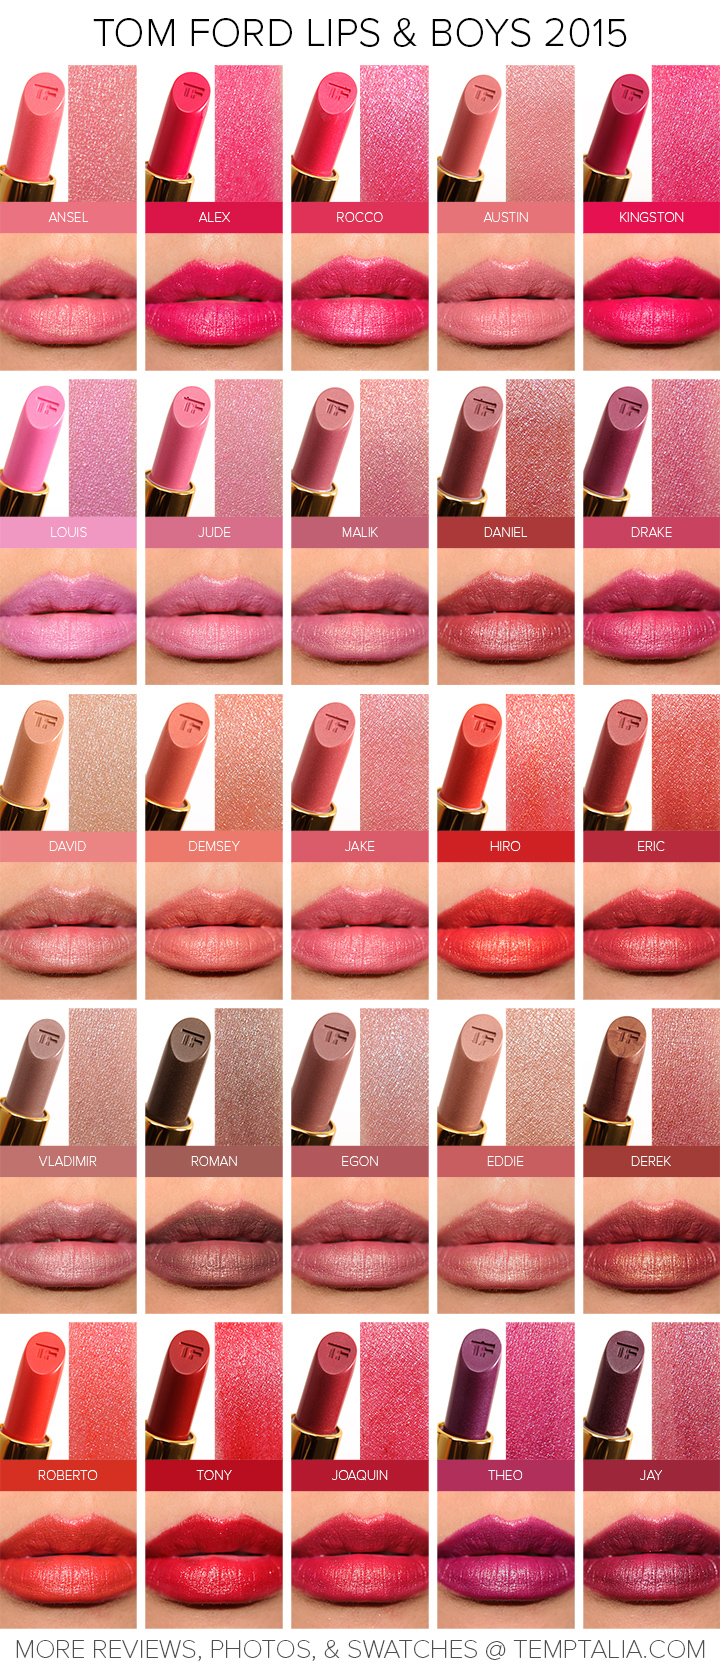 Tom Ford Lips & Boys Collection